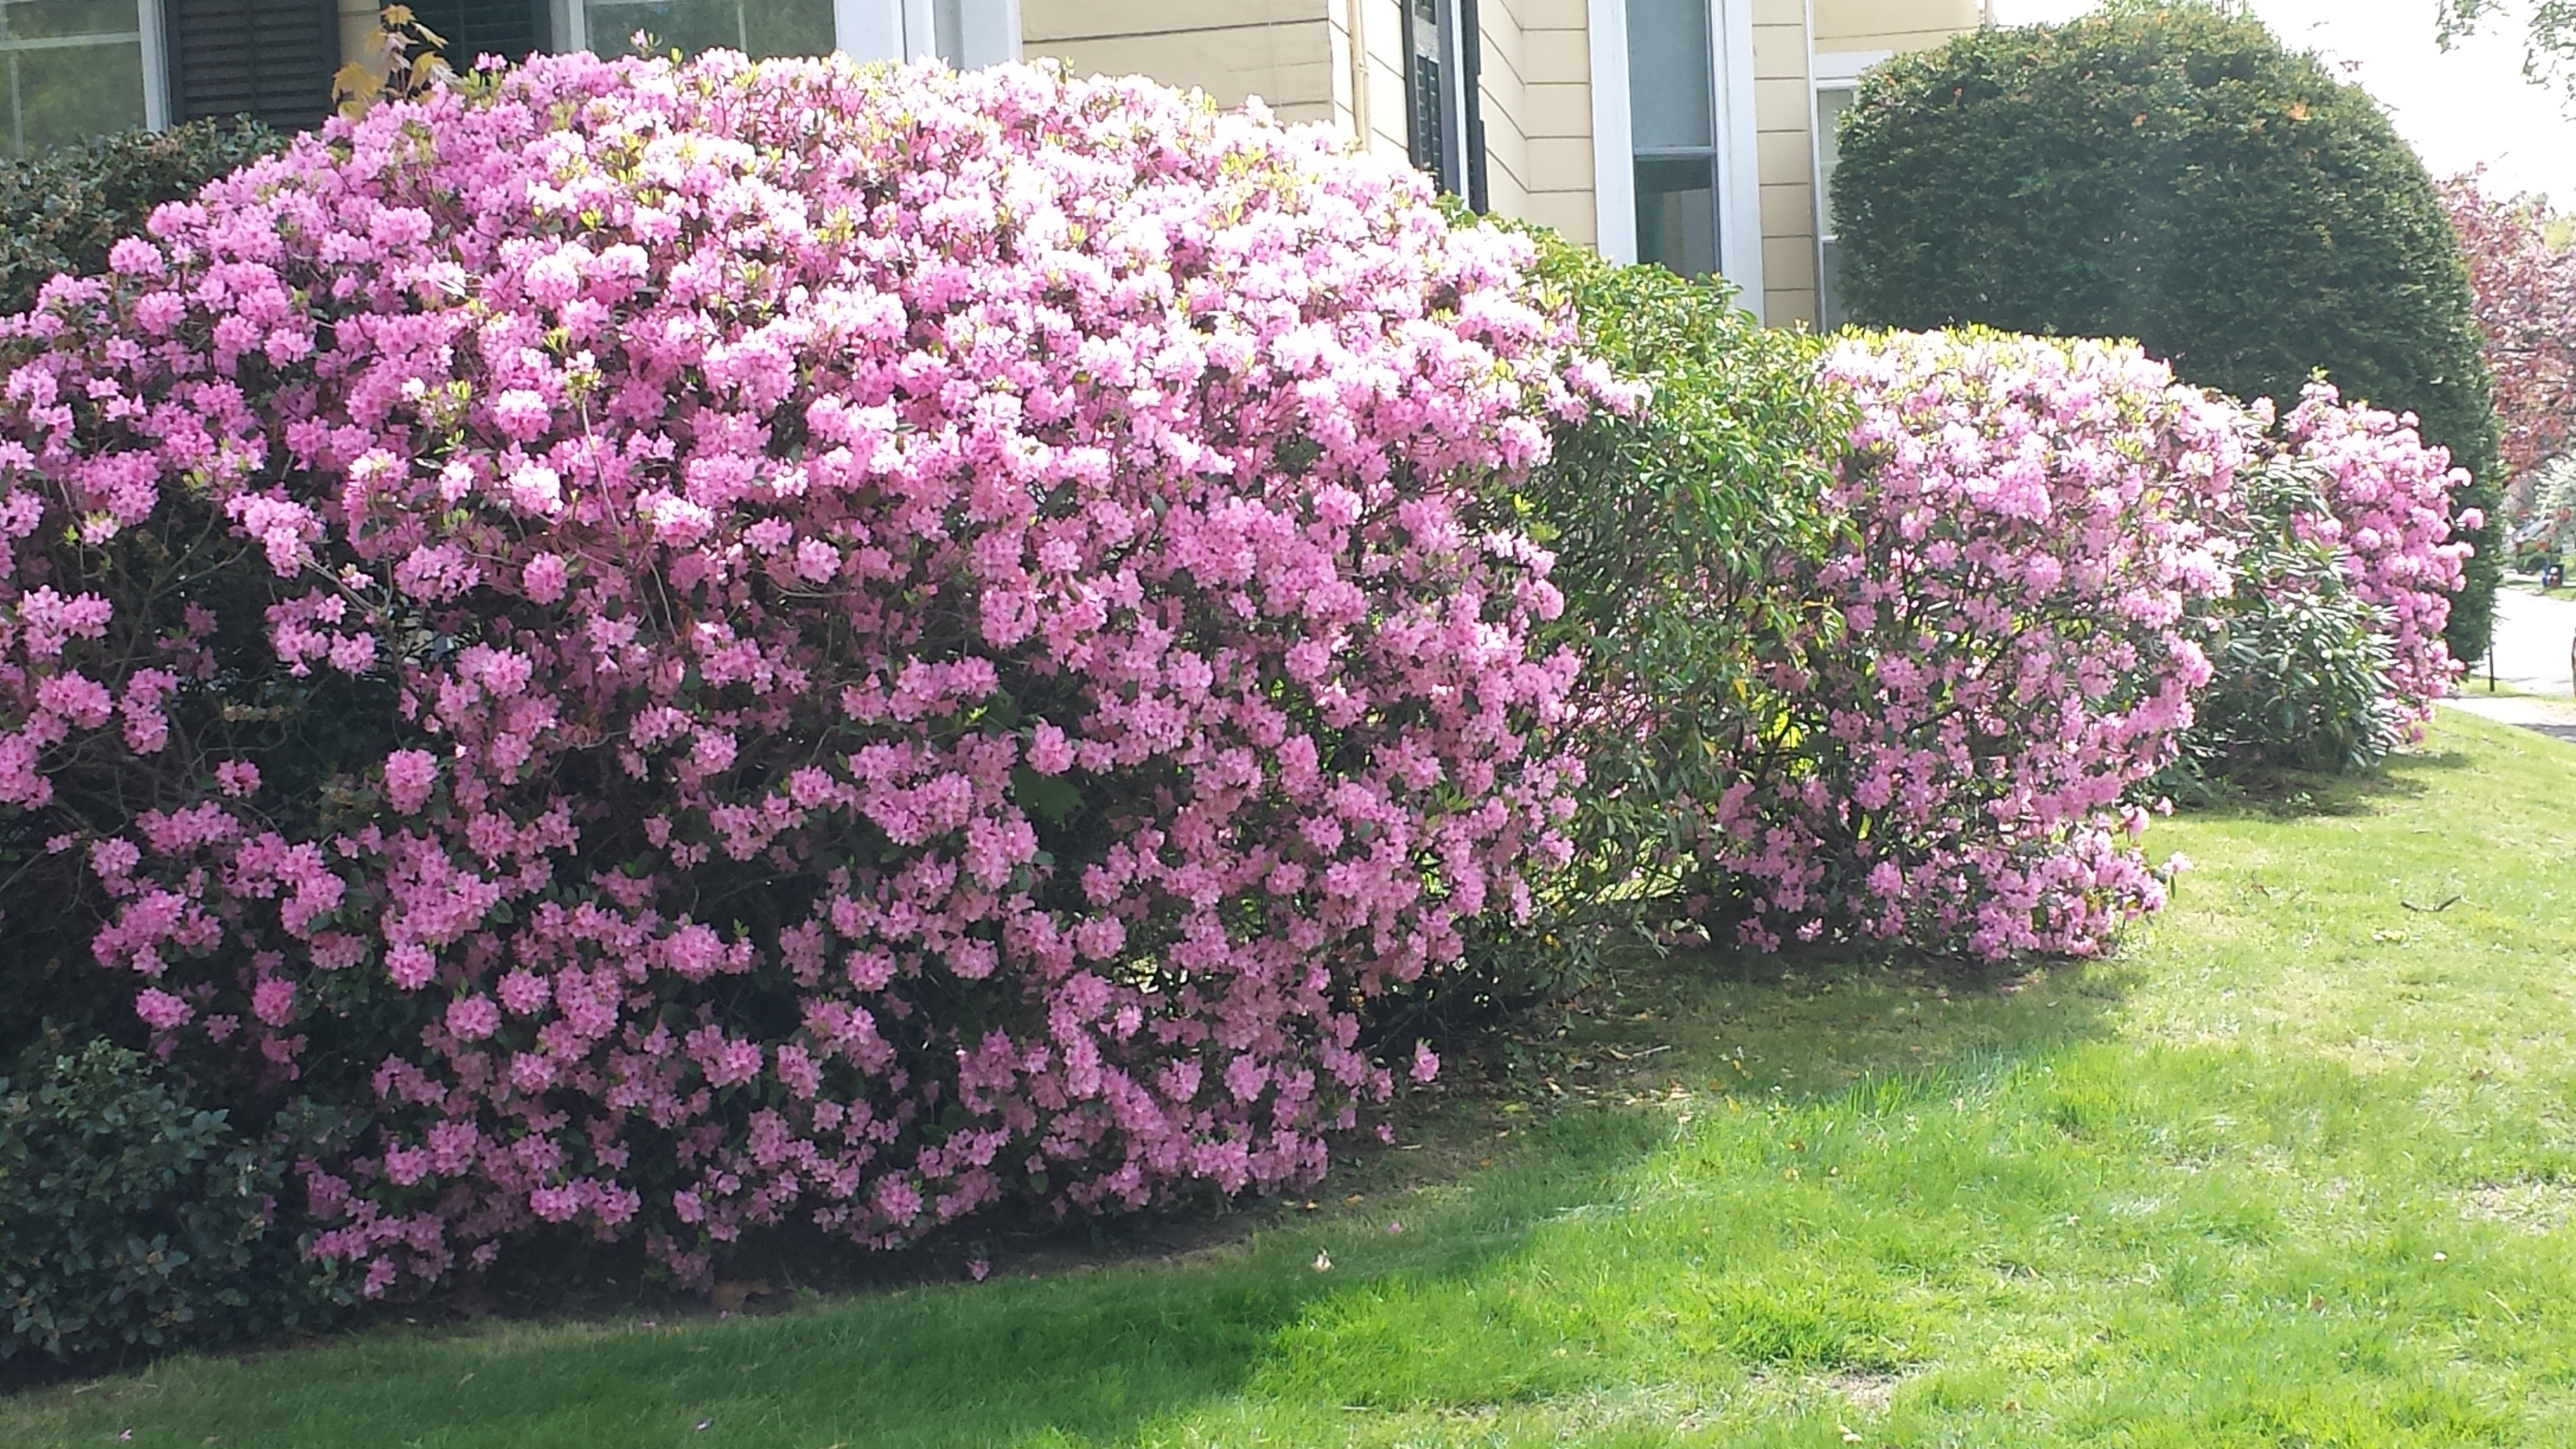 What Are Those Flowering Trees Bushes I Drive By Every Day Utter Peugeot Expert Fuse Box Location Common Name Pjm Elite Lavender Rhododendron